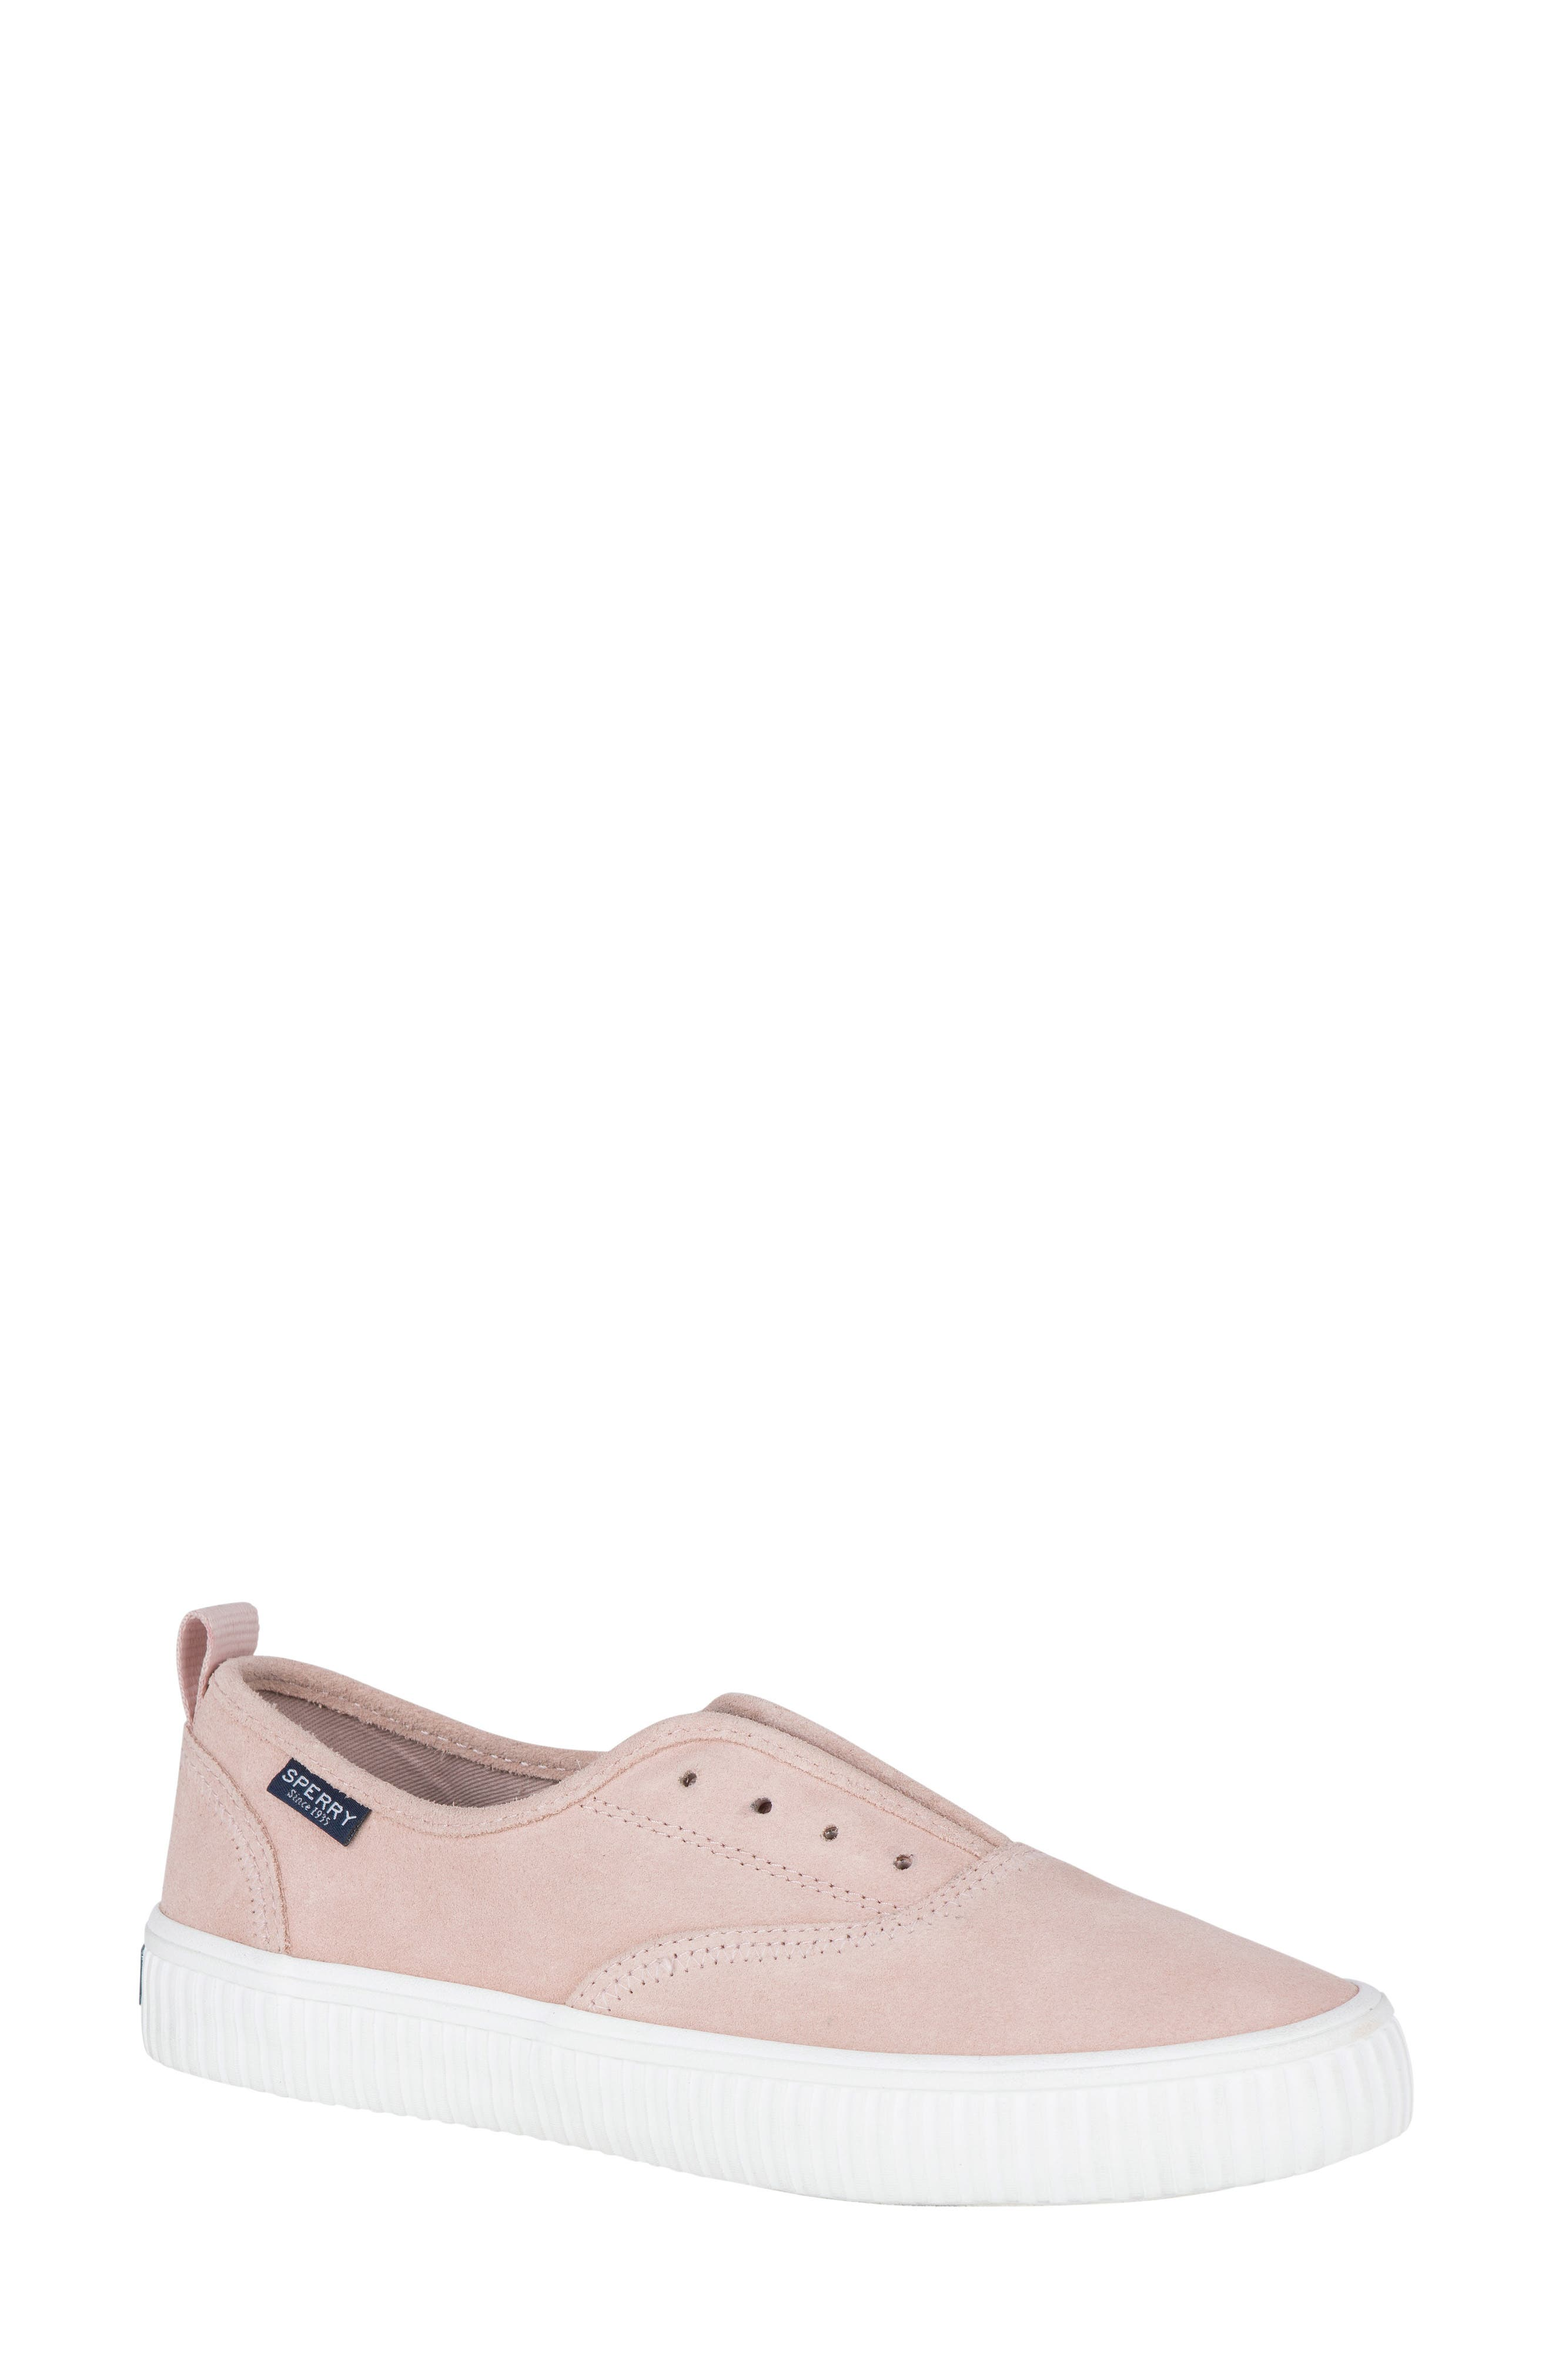 Crest Creeper Slip-On Sneaker,                         Main,                         color, Rose Dust Suede